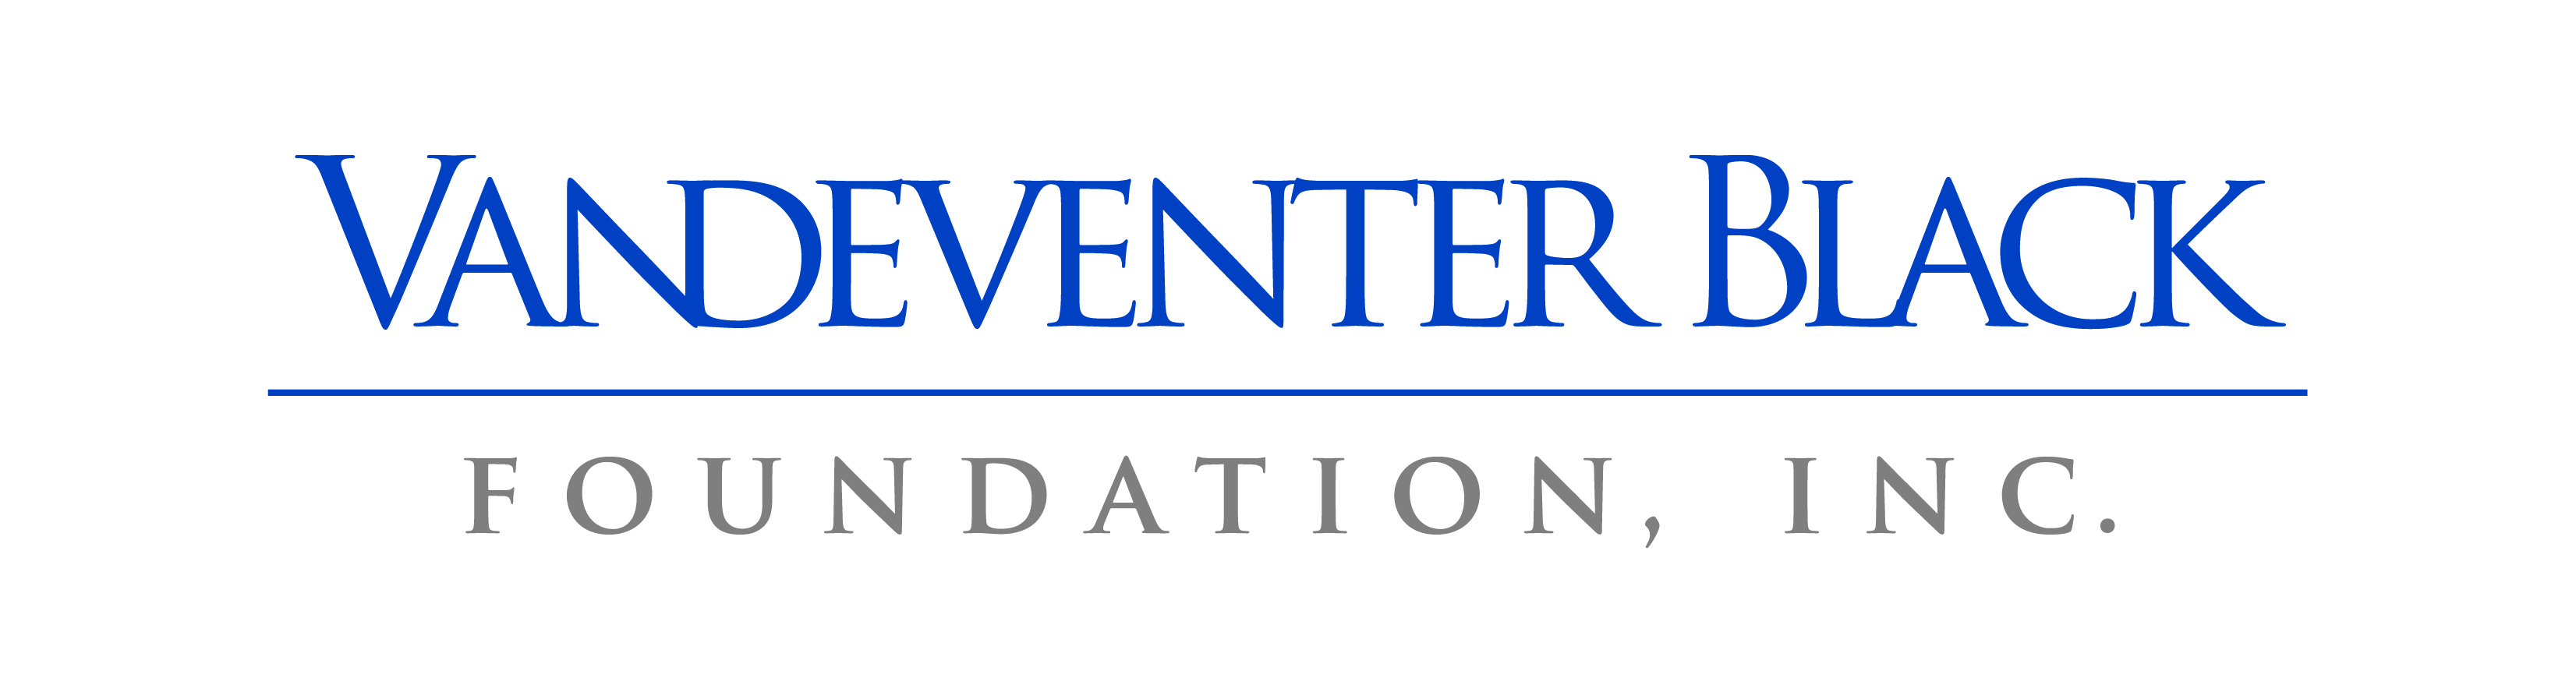 VB_Foundation_Logo